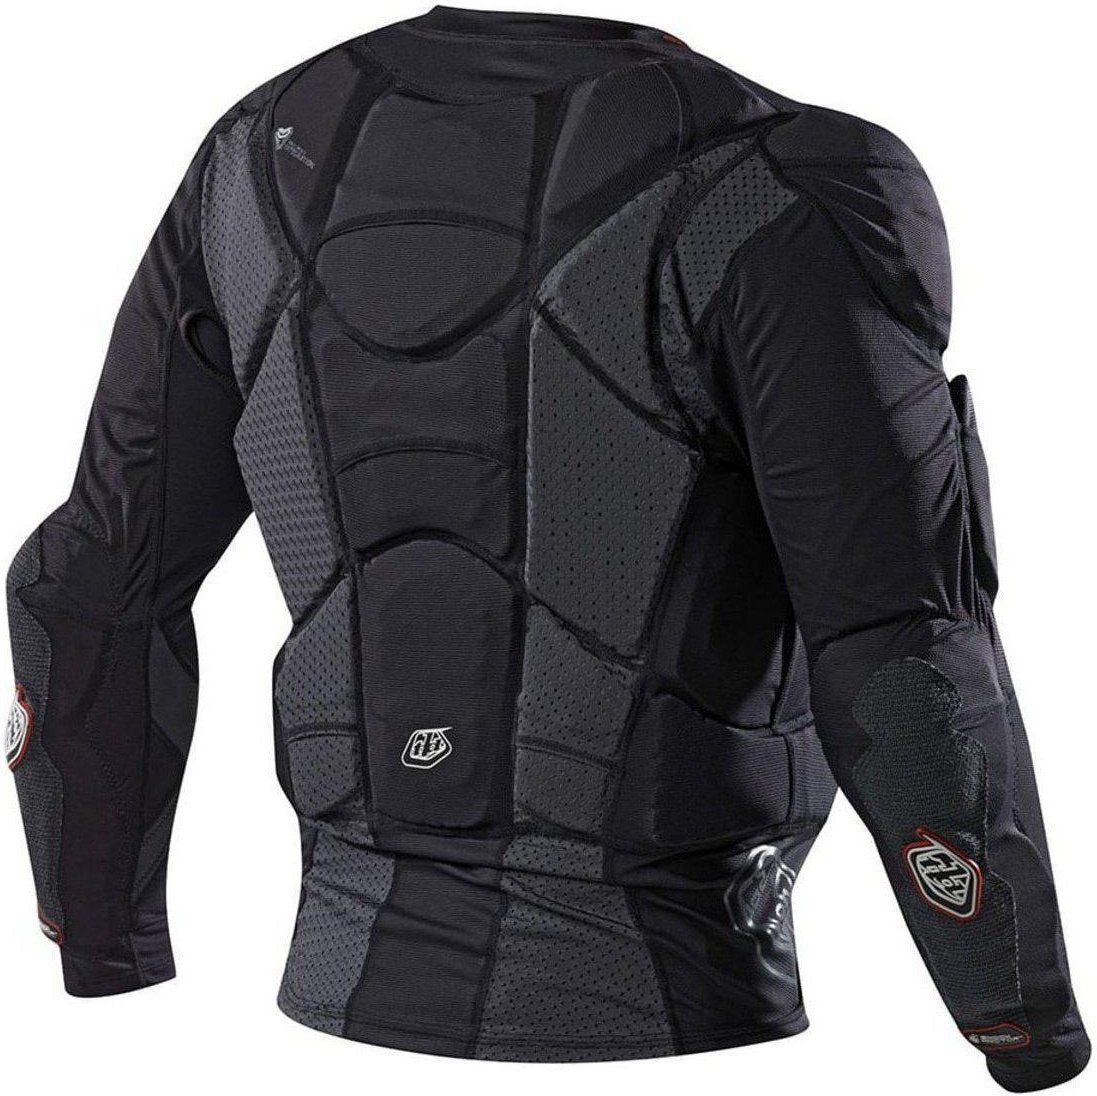 Troy Lee Designs 7855 Upper Protection Long Sleeve Shirt - Hot Weather